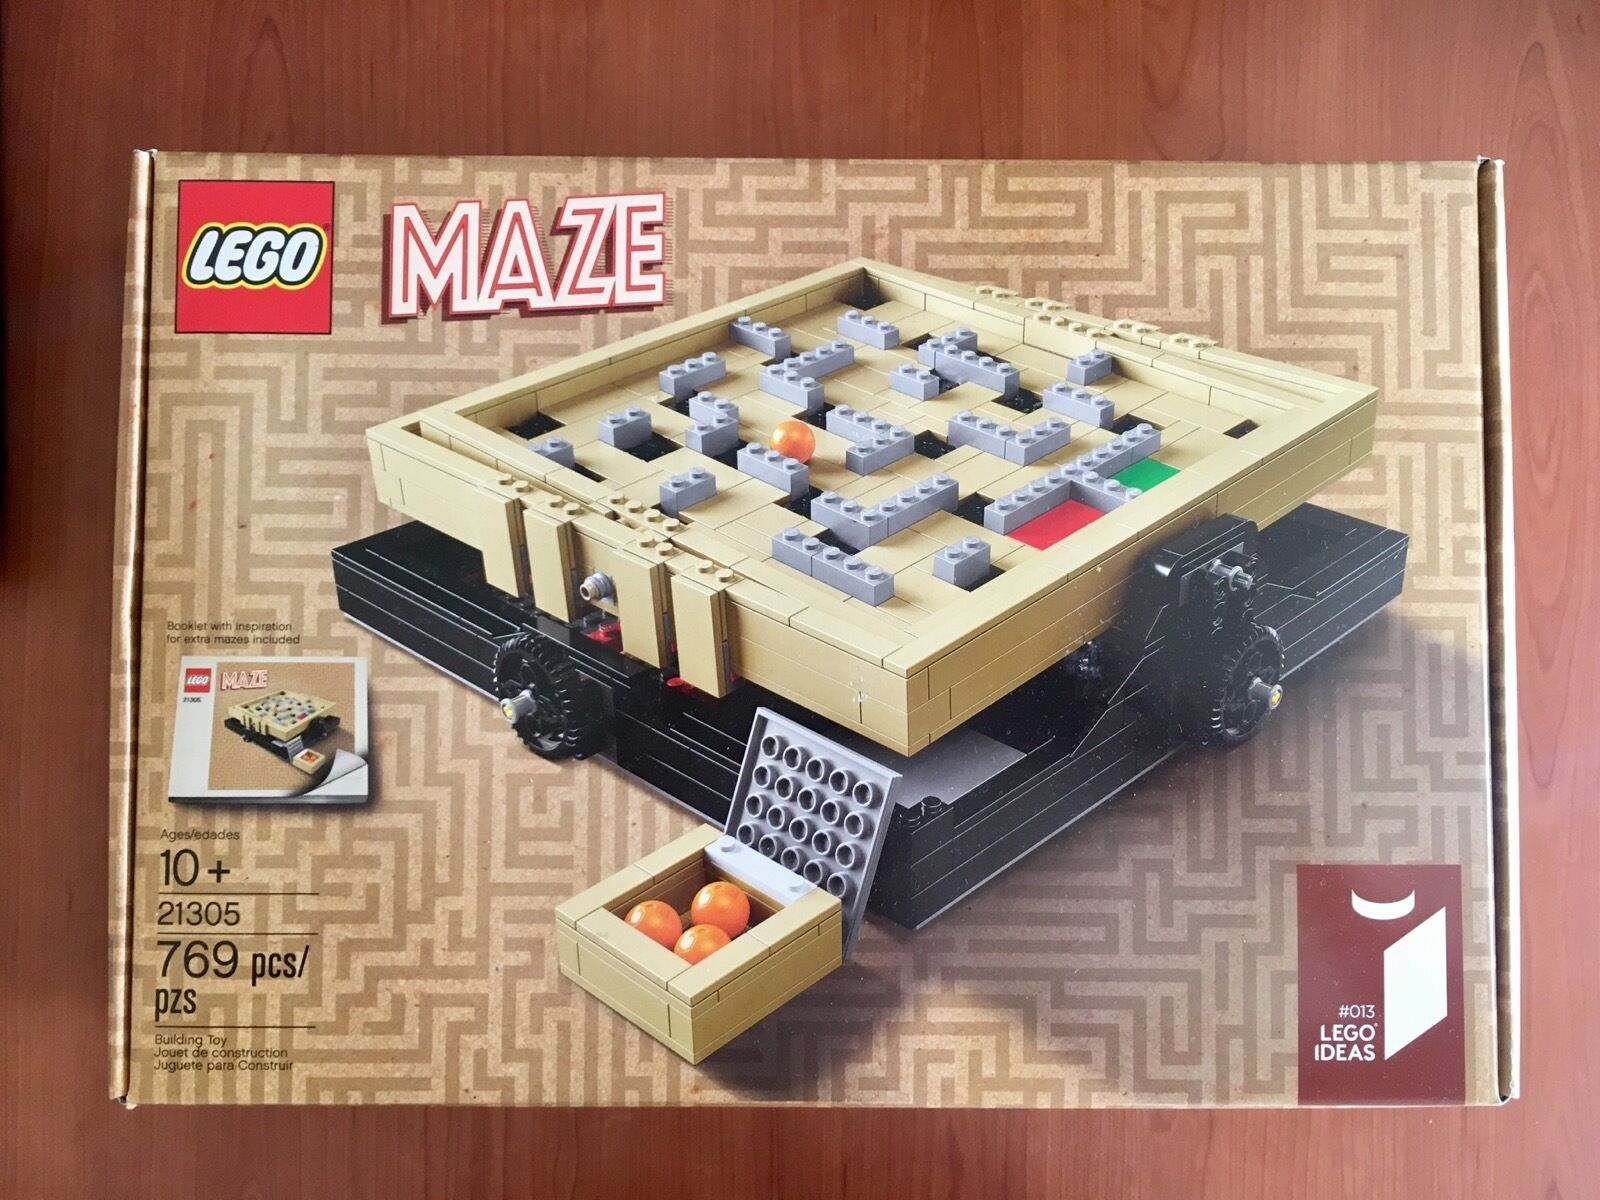 NEW and Sealed  RARE  LEGO Ideas 21305 Maze Building Kit (769 Piece)